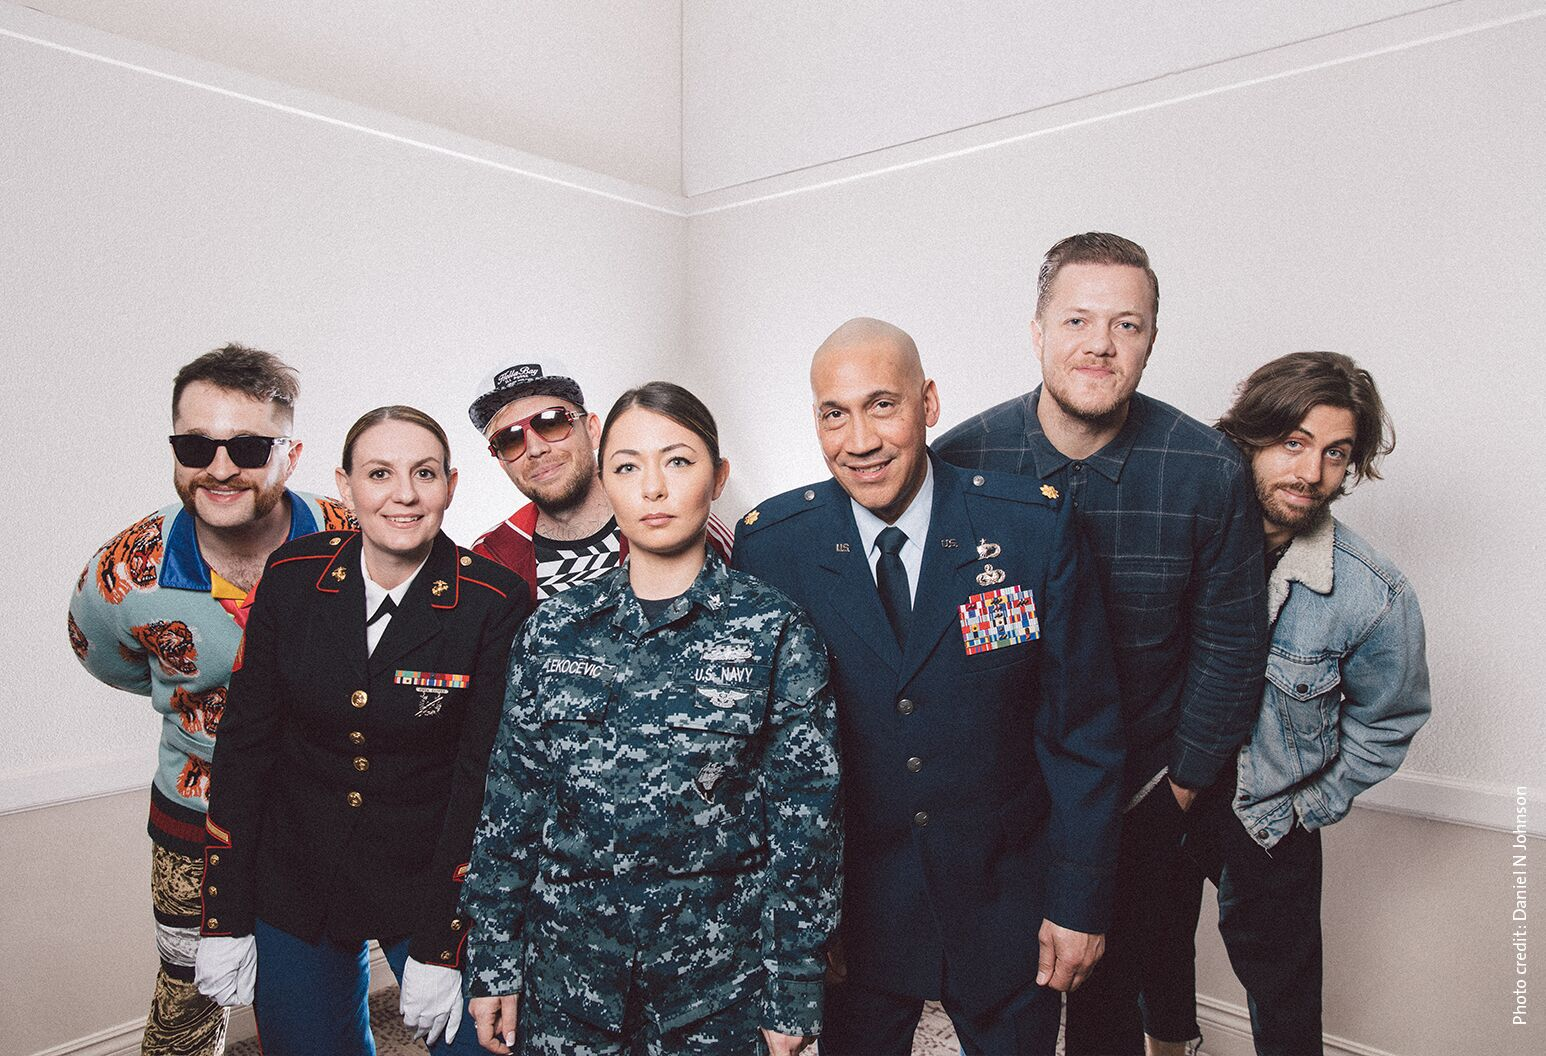 Imagine Dragons with military personnel